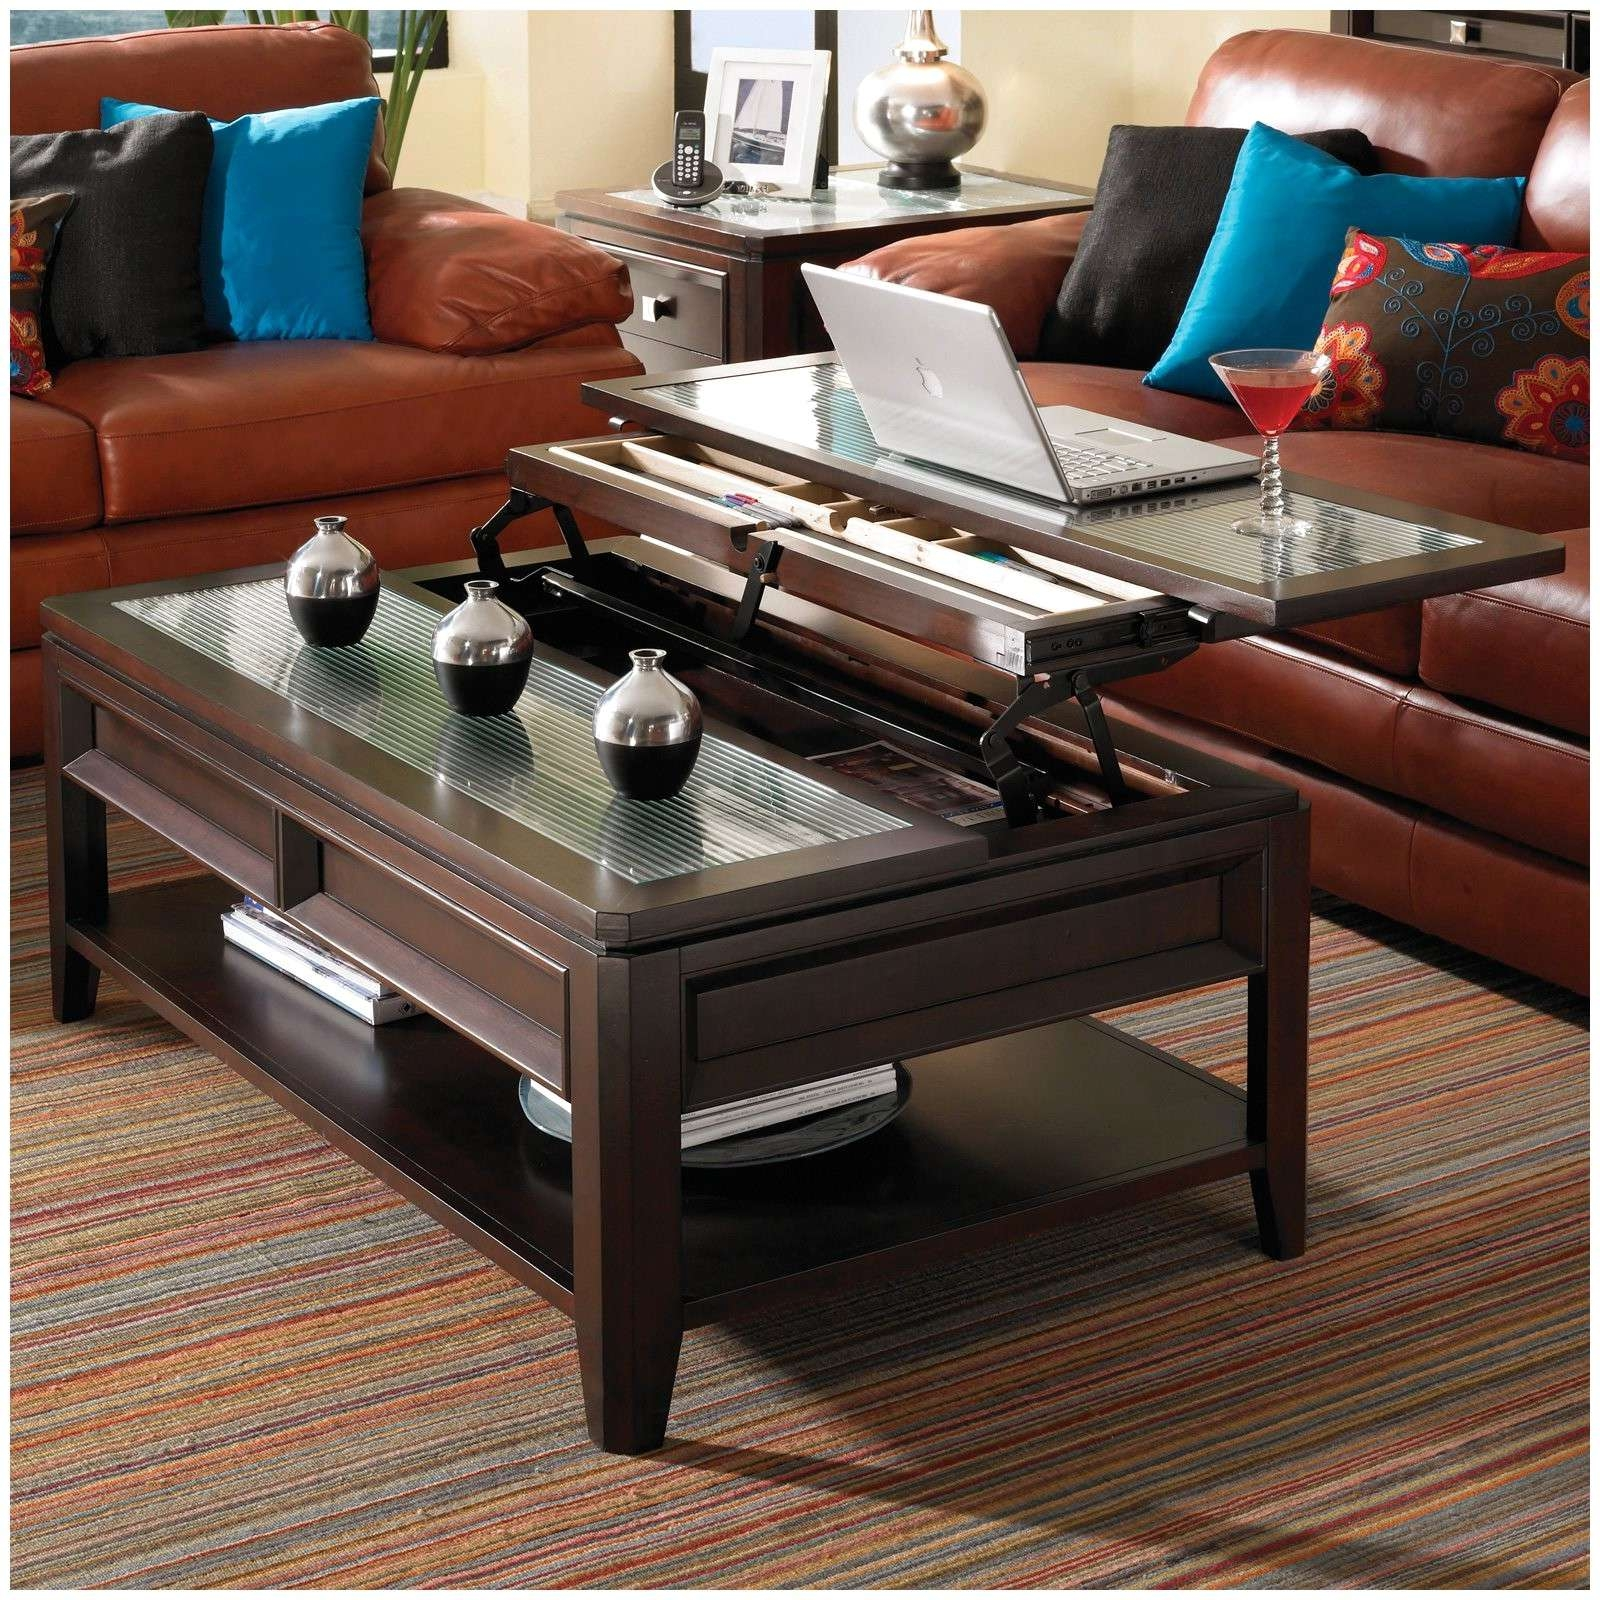 2017 Raise Up Coffee Tables Intended For Coffee Tables That Raise Up 19703 Coffee Table Astounding Coffee (View 1 of 20)